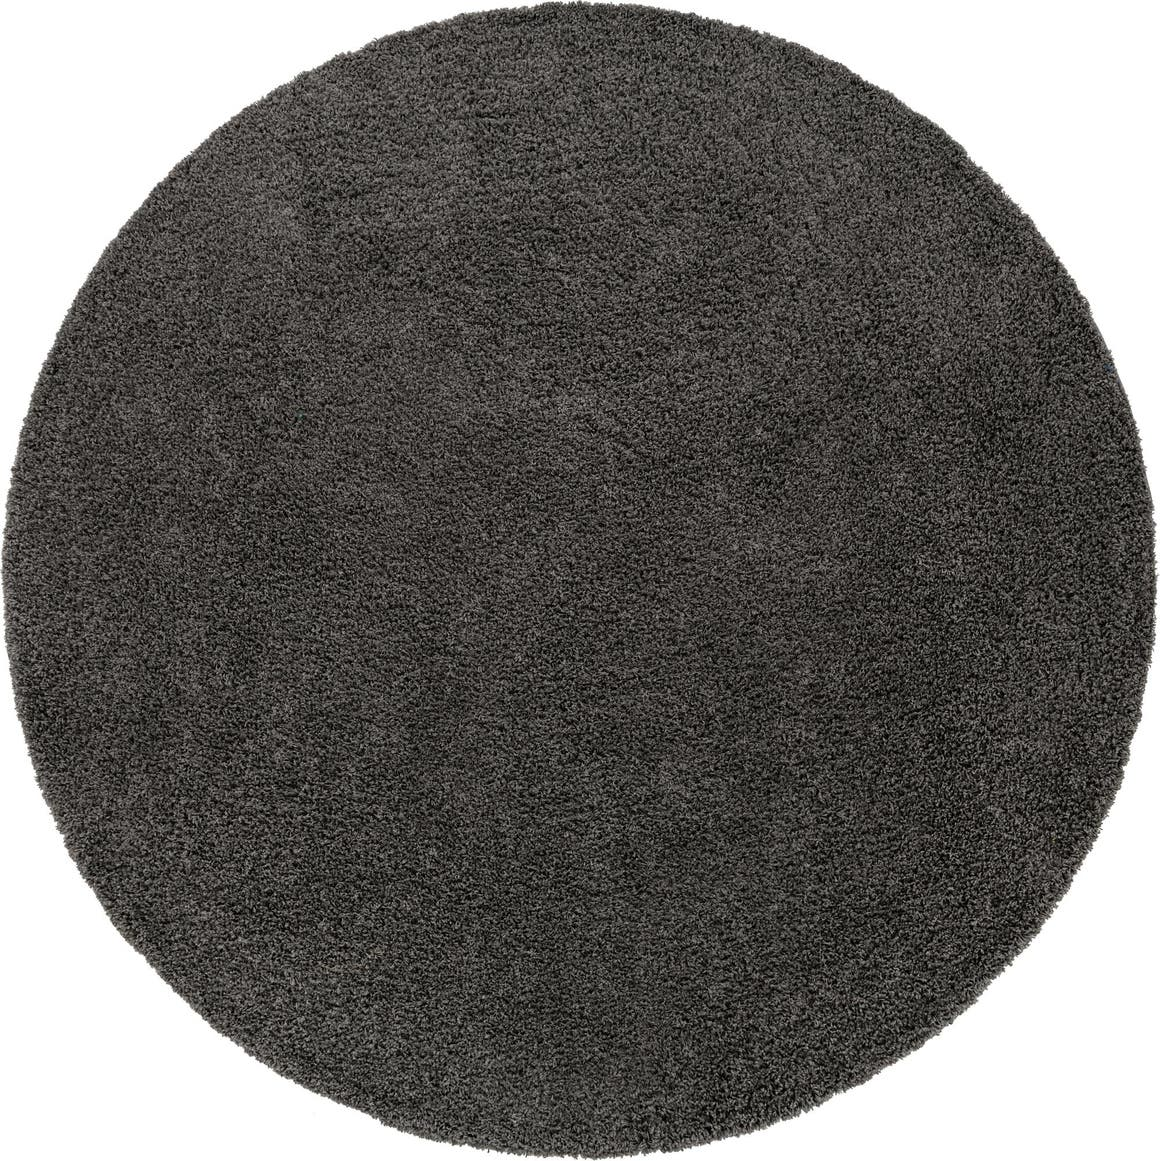 12' 4 x 12' 4 Solid Shag Round Rug main image